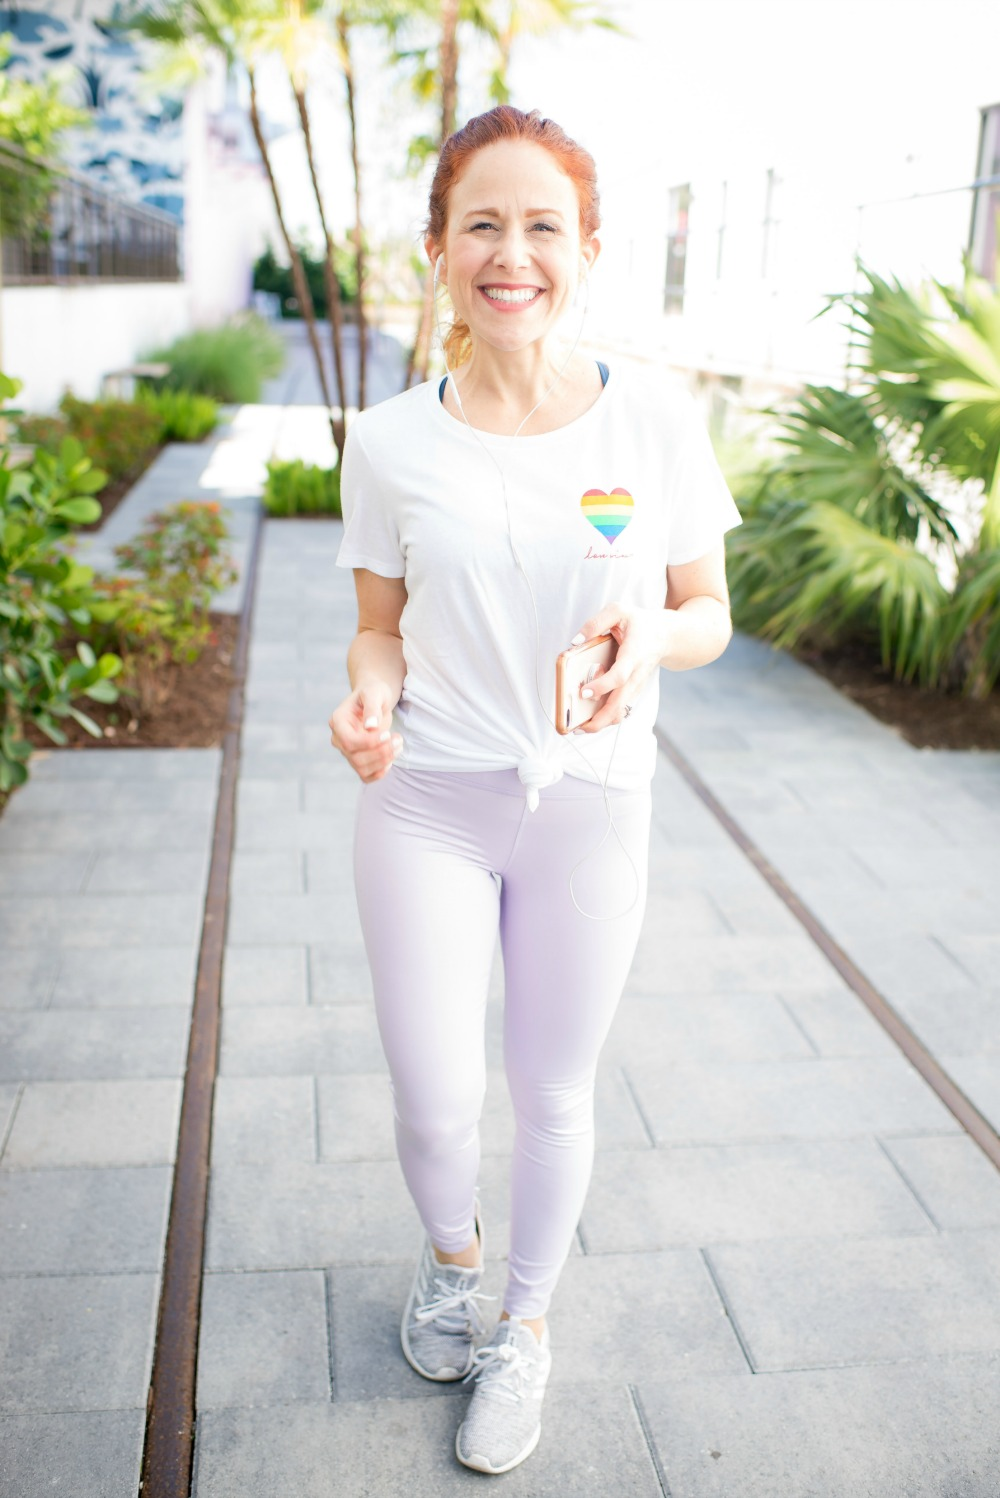 workout photo in west palm beach - - Workout Vibes + Why You Deserve to Invest In Yourself featured by popular Florida lifestyle blogger The Modern Savvy